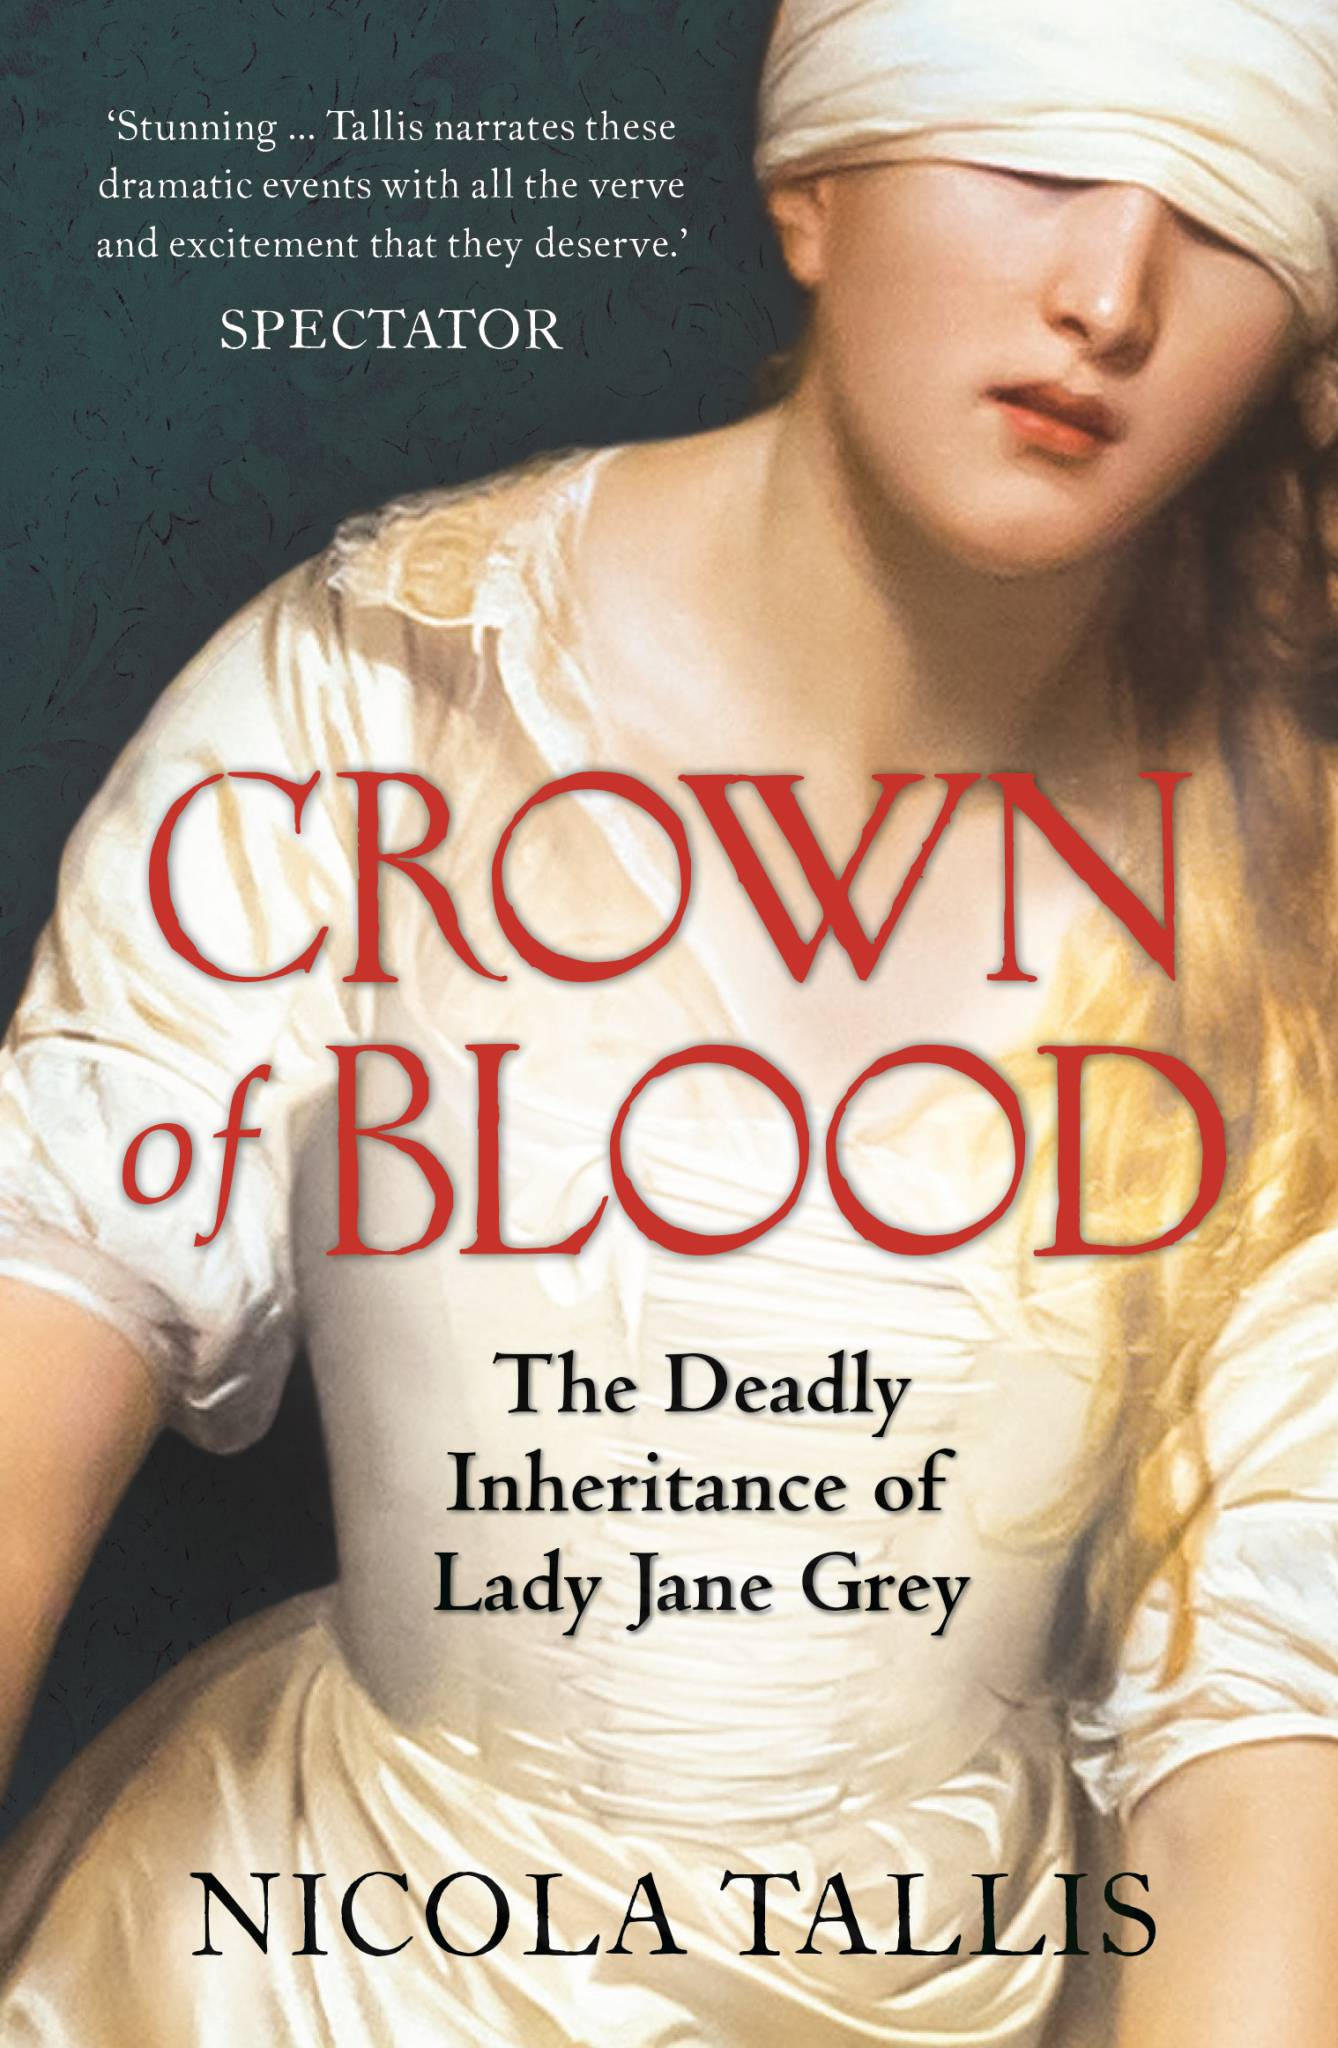 Medieval Festival Talk - Nicola Tallis 'Crown of Blood: The Deadly Inheritance of Lady Jane Grey'